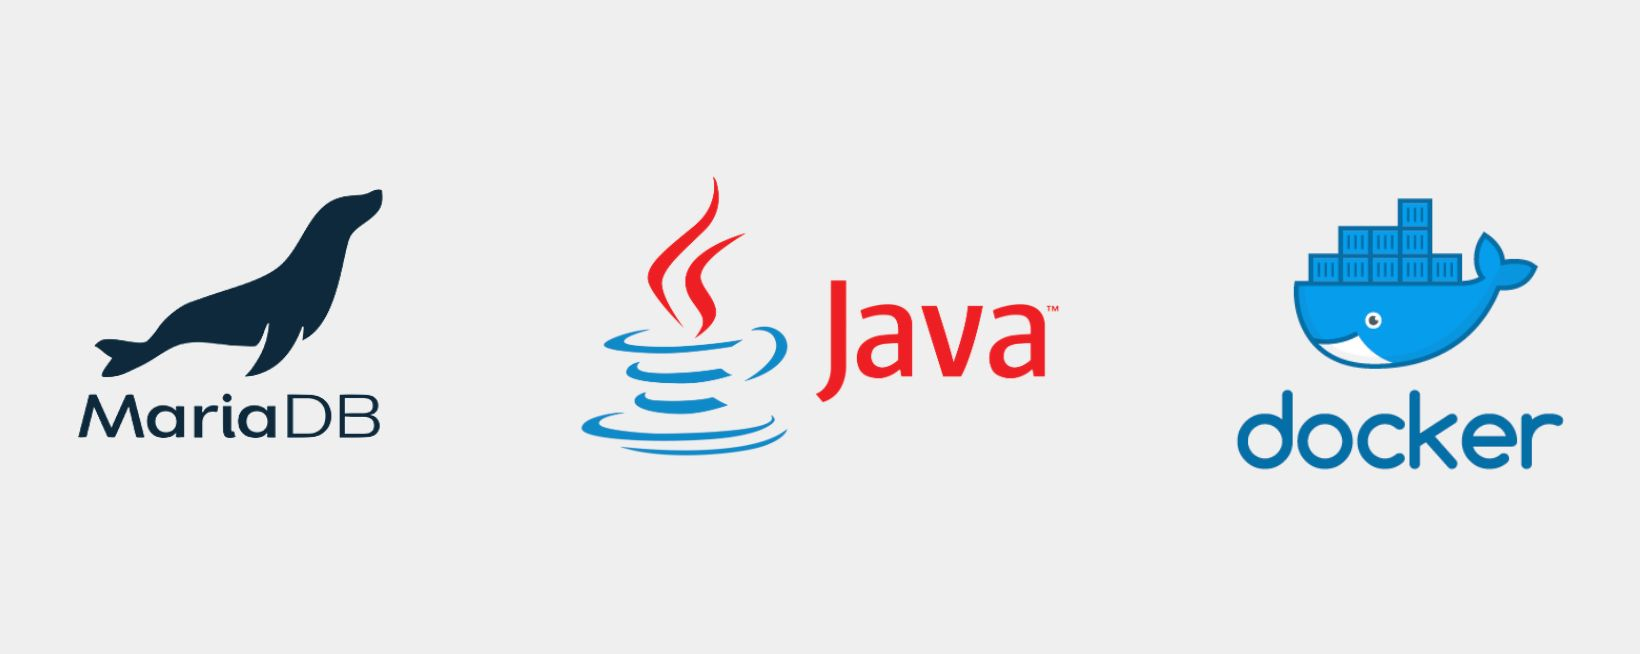 /how-to-connect-mariadb-docker-containers-with-java-spring-and-jdbc-ex243urb feature image